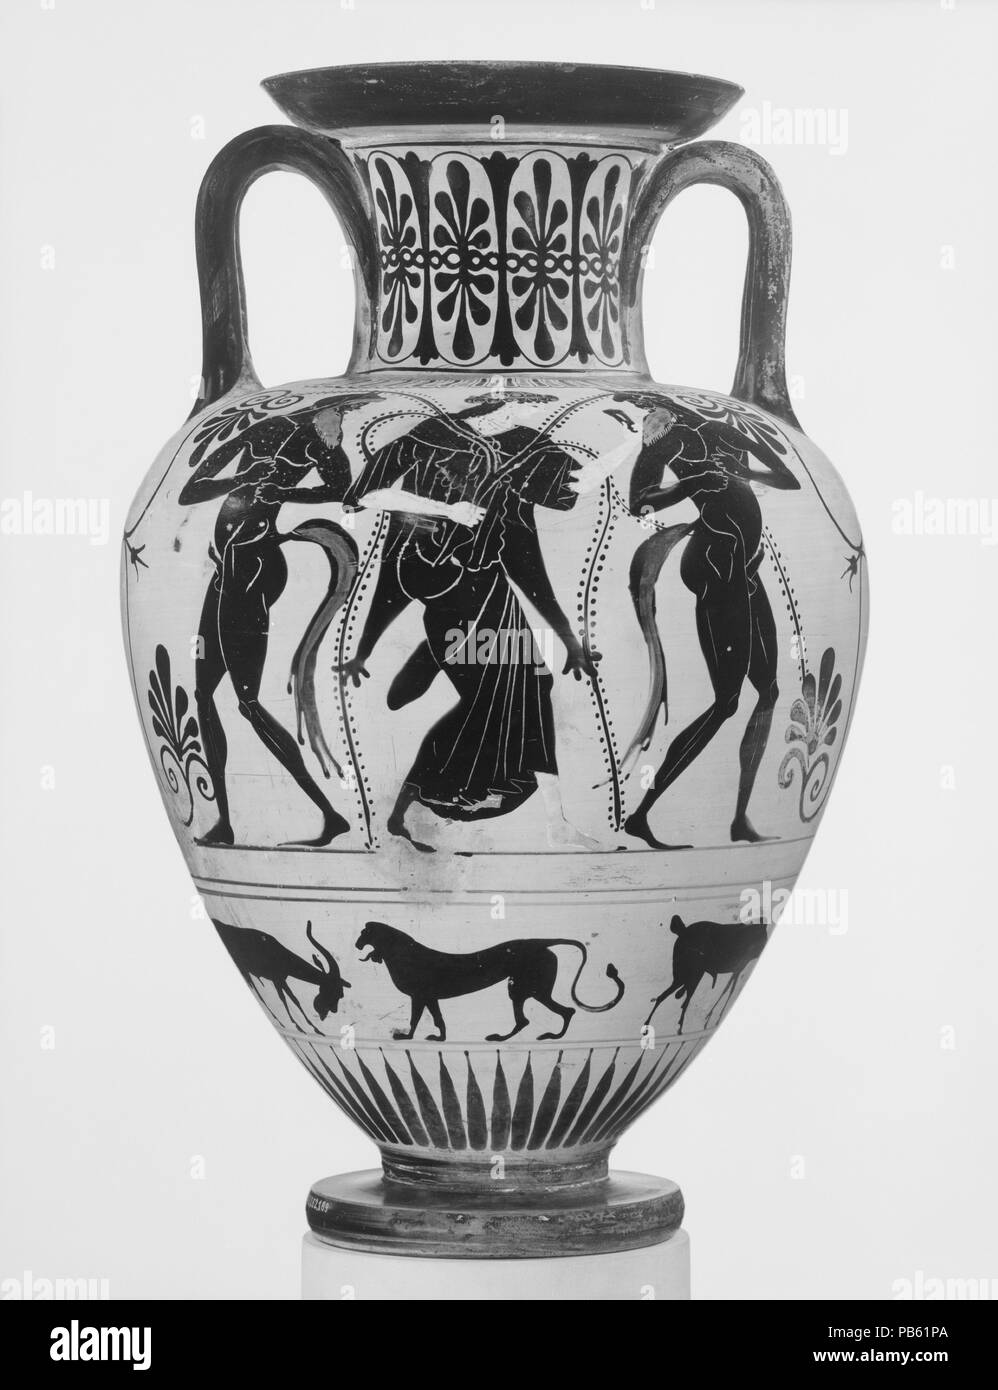 Terracotta neck-amphora (jar). Culture: Greek, Attic. Dimensions: H. 16 5/8 in. (42.2 cm); diameter  10 3/4 in. (27.3 cm). Date: ca. 490 B.C..  Obverse, warrior departing  Reverse, satyrs and maenad  Although the Kleophrades Painter used the red-figure technique predominantly, he was perfectly conversant with black-figure, as indicated by his Panathenaic prize amphorae. While the decoration of this vase is similar to that of examples of the late sixth century B.C., the fluidity of the incision, the rendering of the satyrs' tails, and the procession of animals drawn without articulation indicat Stock Photo